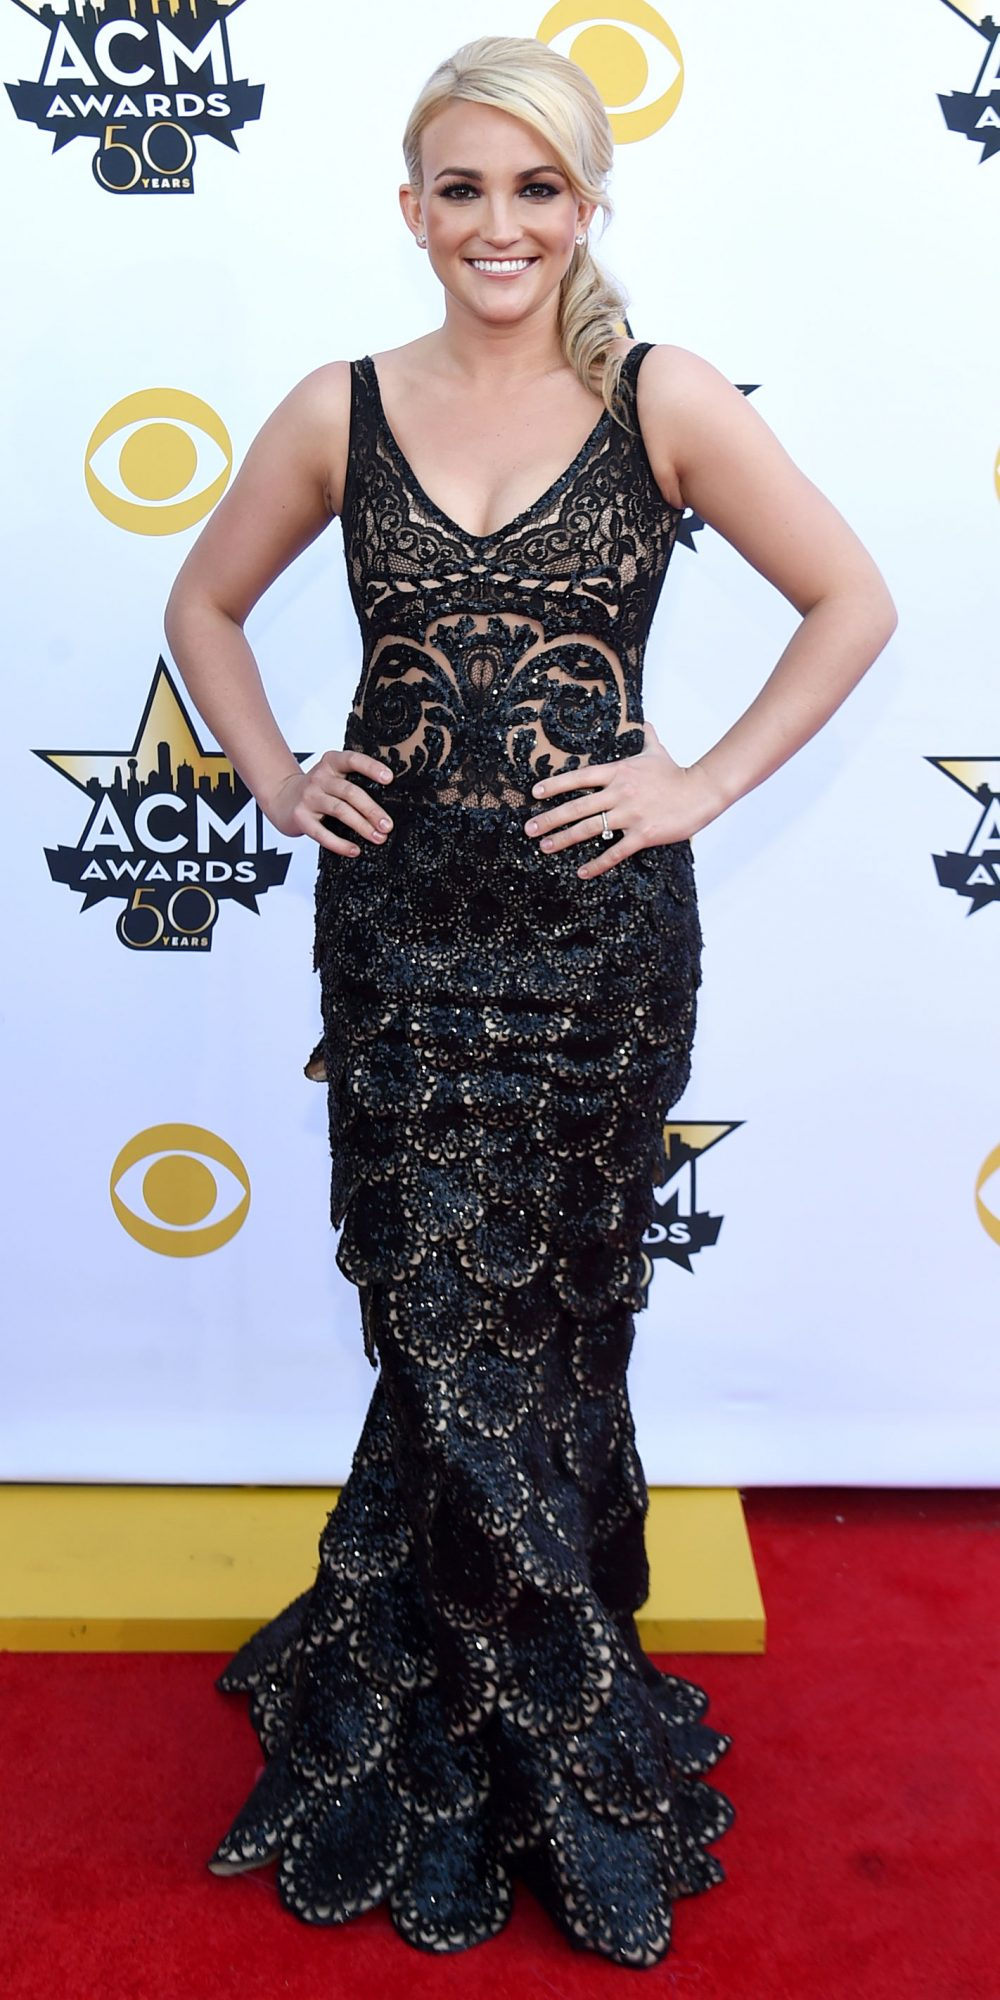 Jamie Lynn Spears in a black lace mermaid gown.